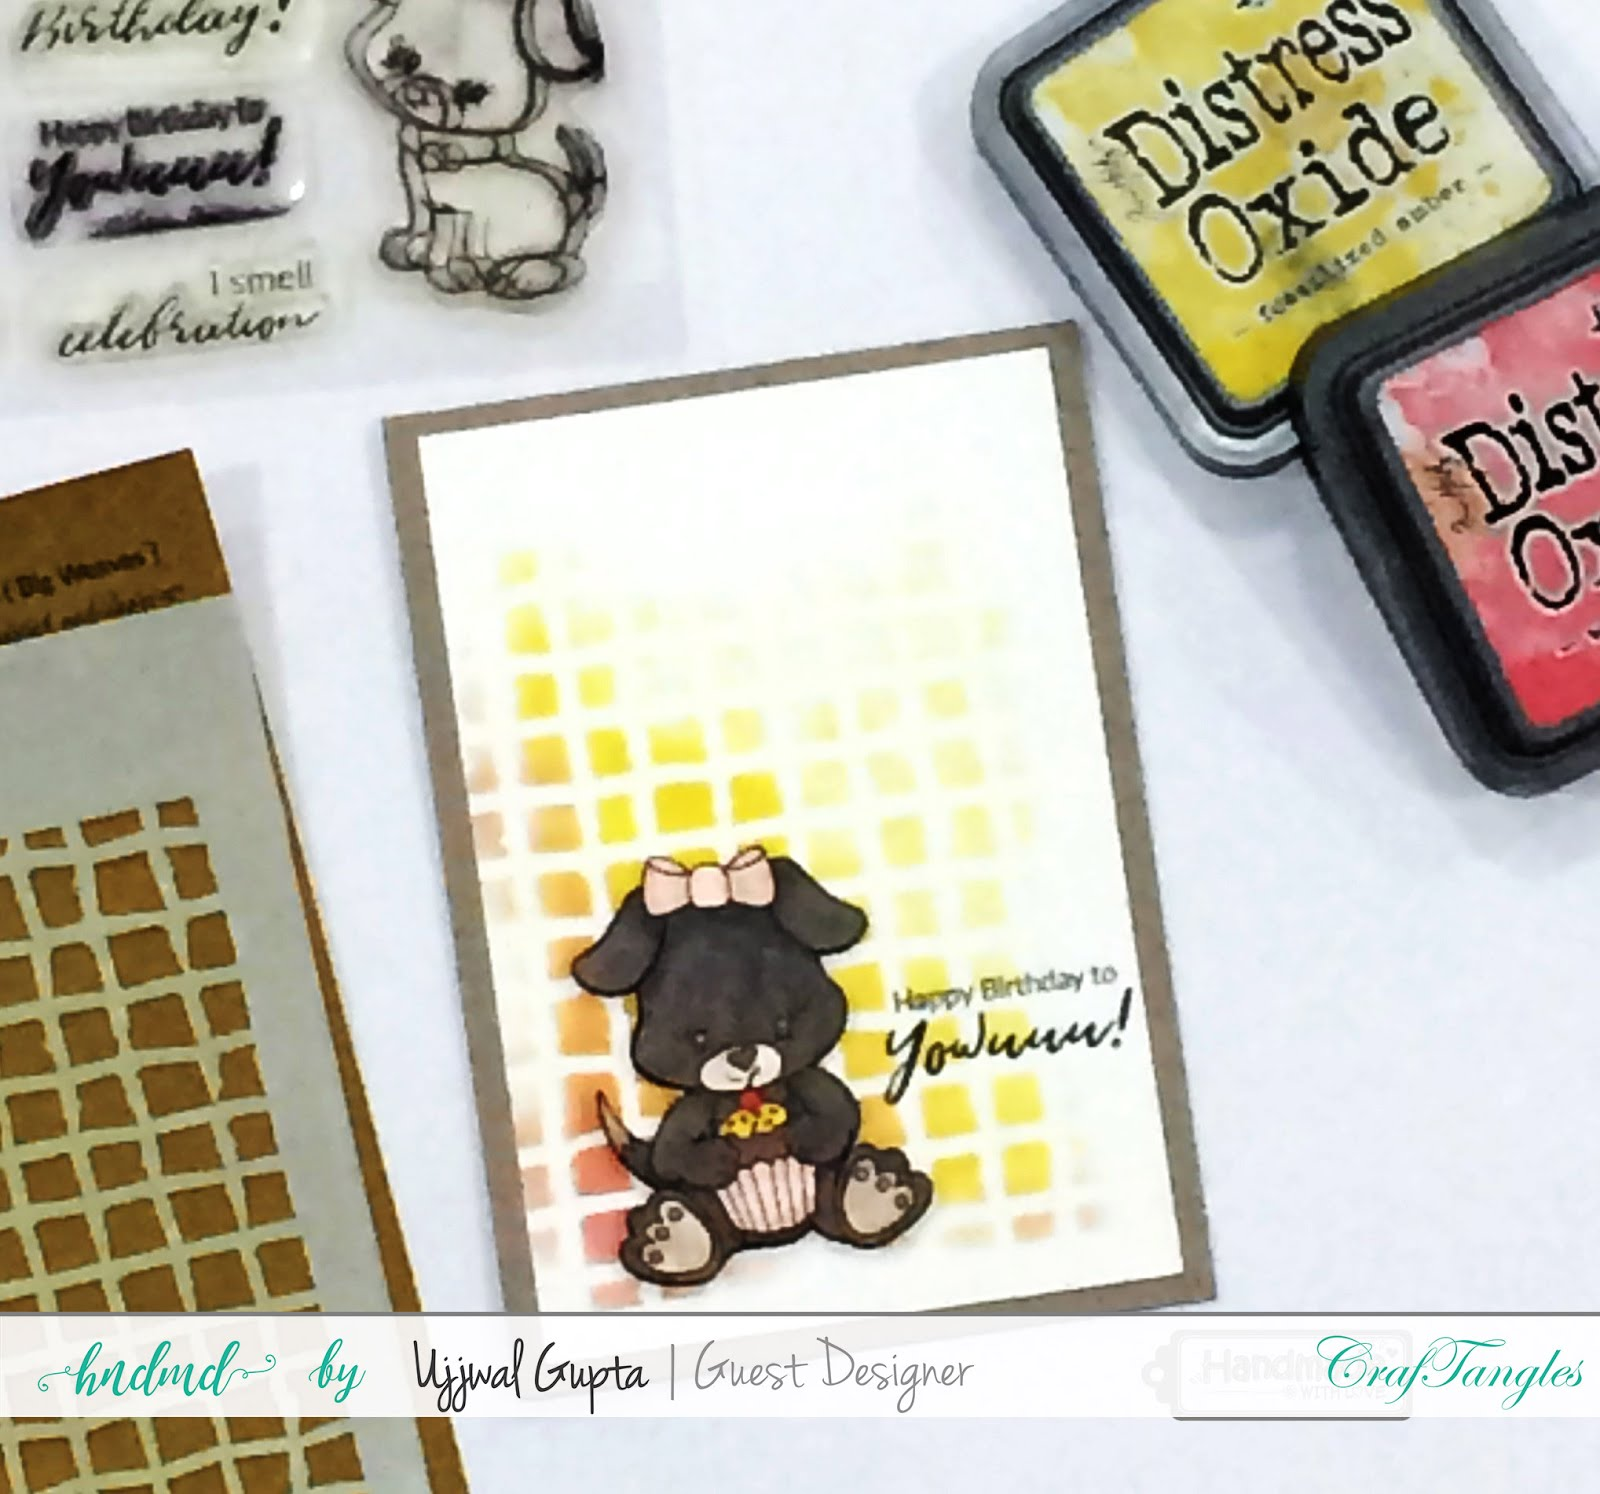 5 Cards using CrafTangles stamps and stencils 1